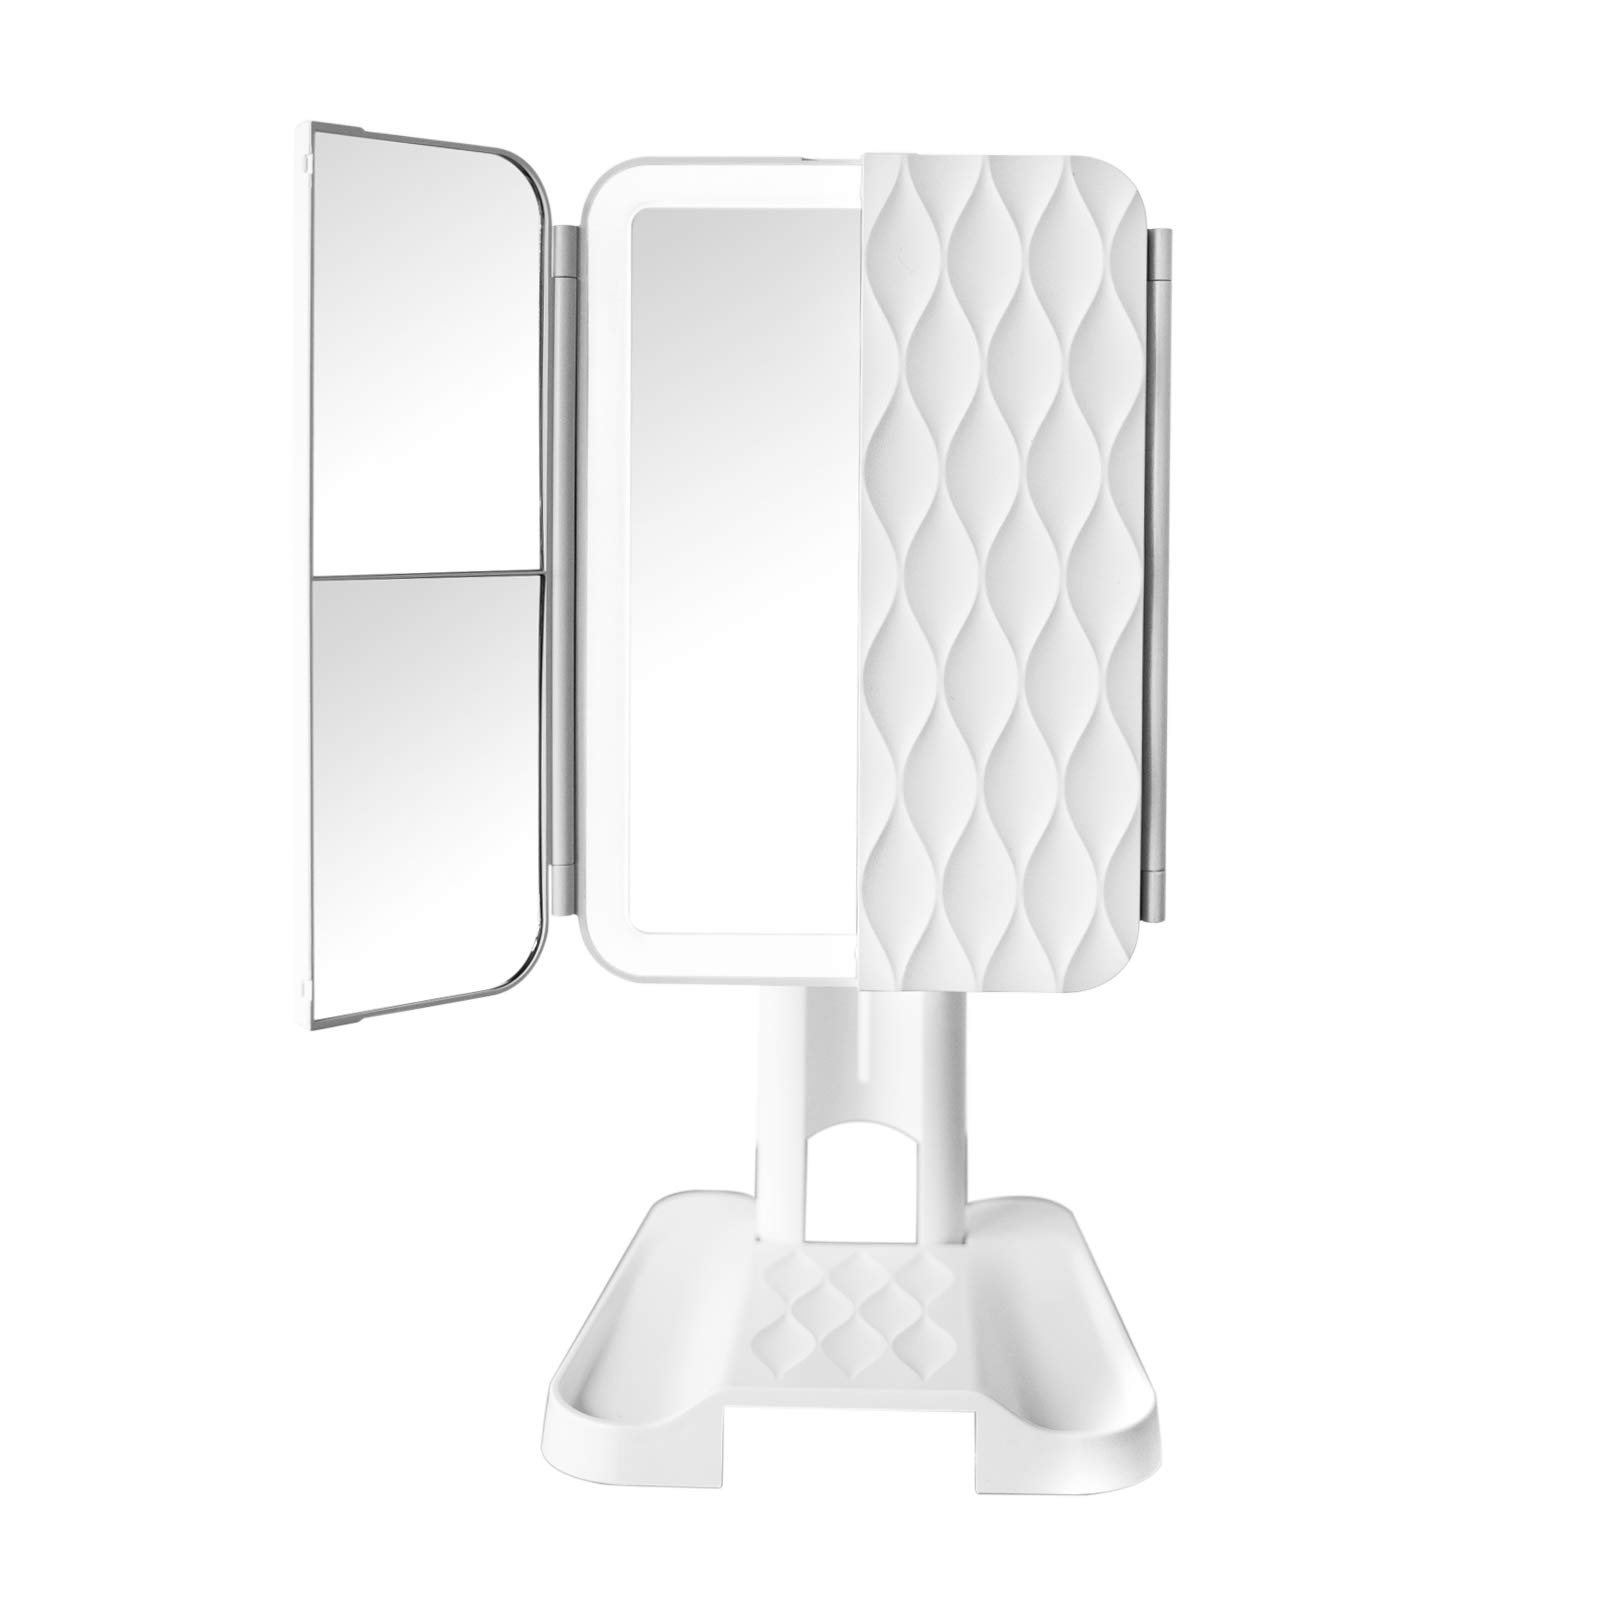 LED Makeup Mirror - Professional Trifold Cosmetic Make Up Mirror with 72 Natural Lights, 3x Magnification, 360 Adjustable Stand for Vanity, Countertop - Compact Portable Travel Design - USB or Battery